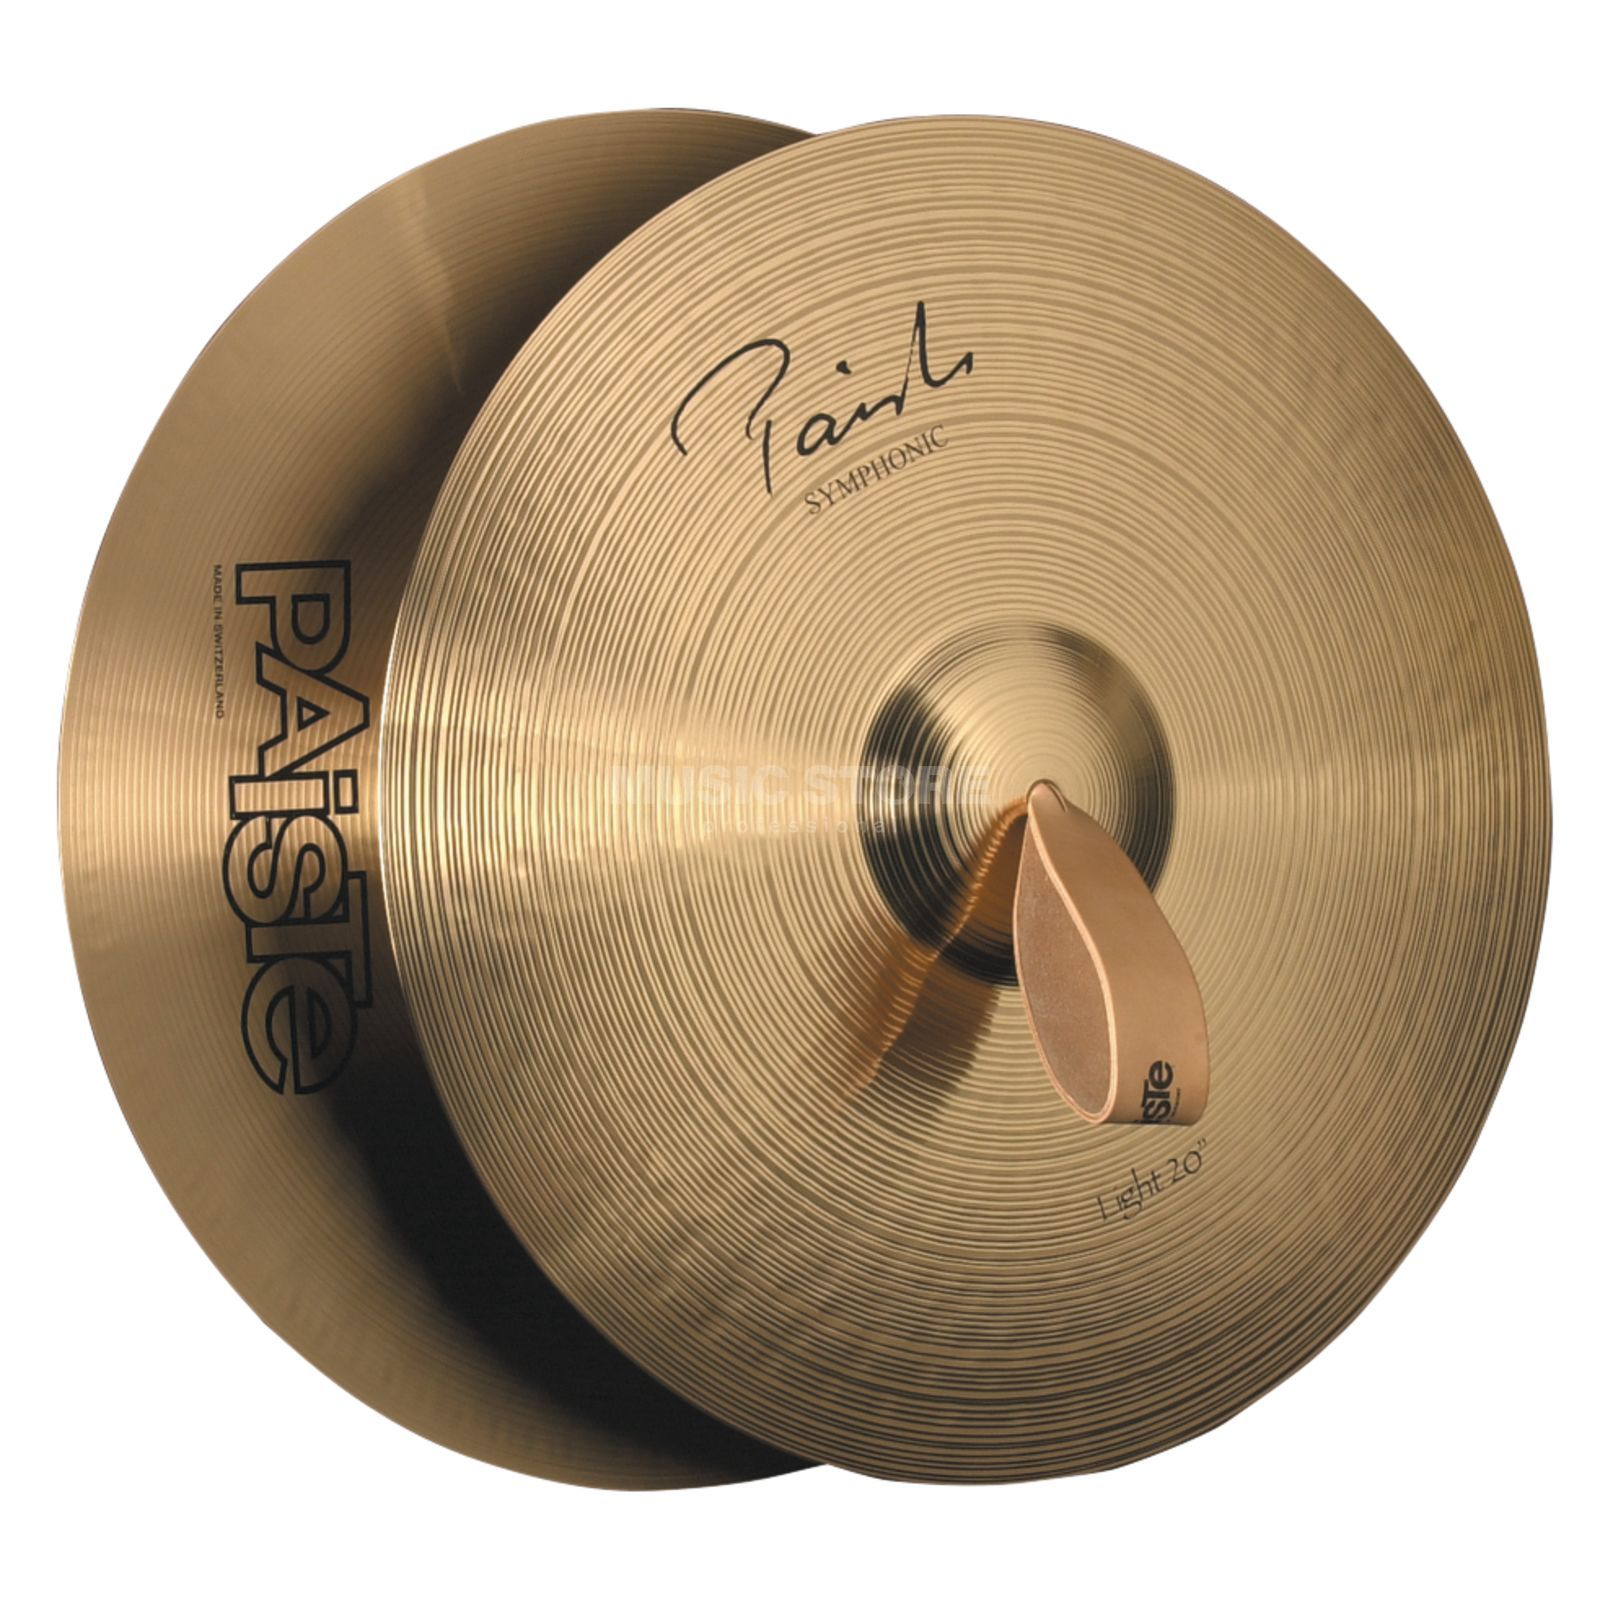 "Paiste Symphonic Orchestra Cymbals, 20"", Medium Light Изображение товара"